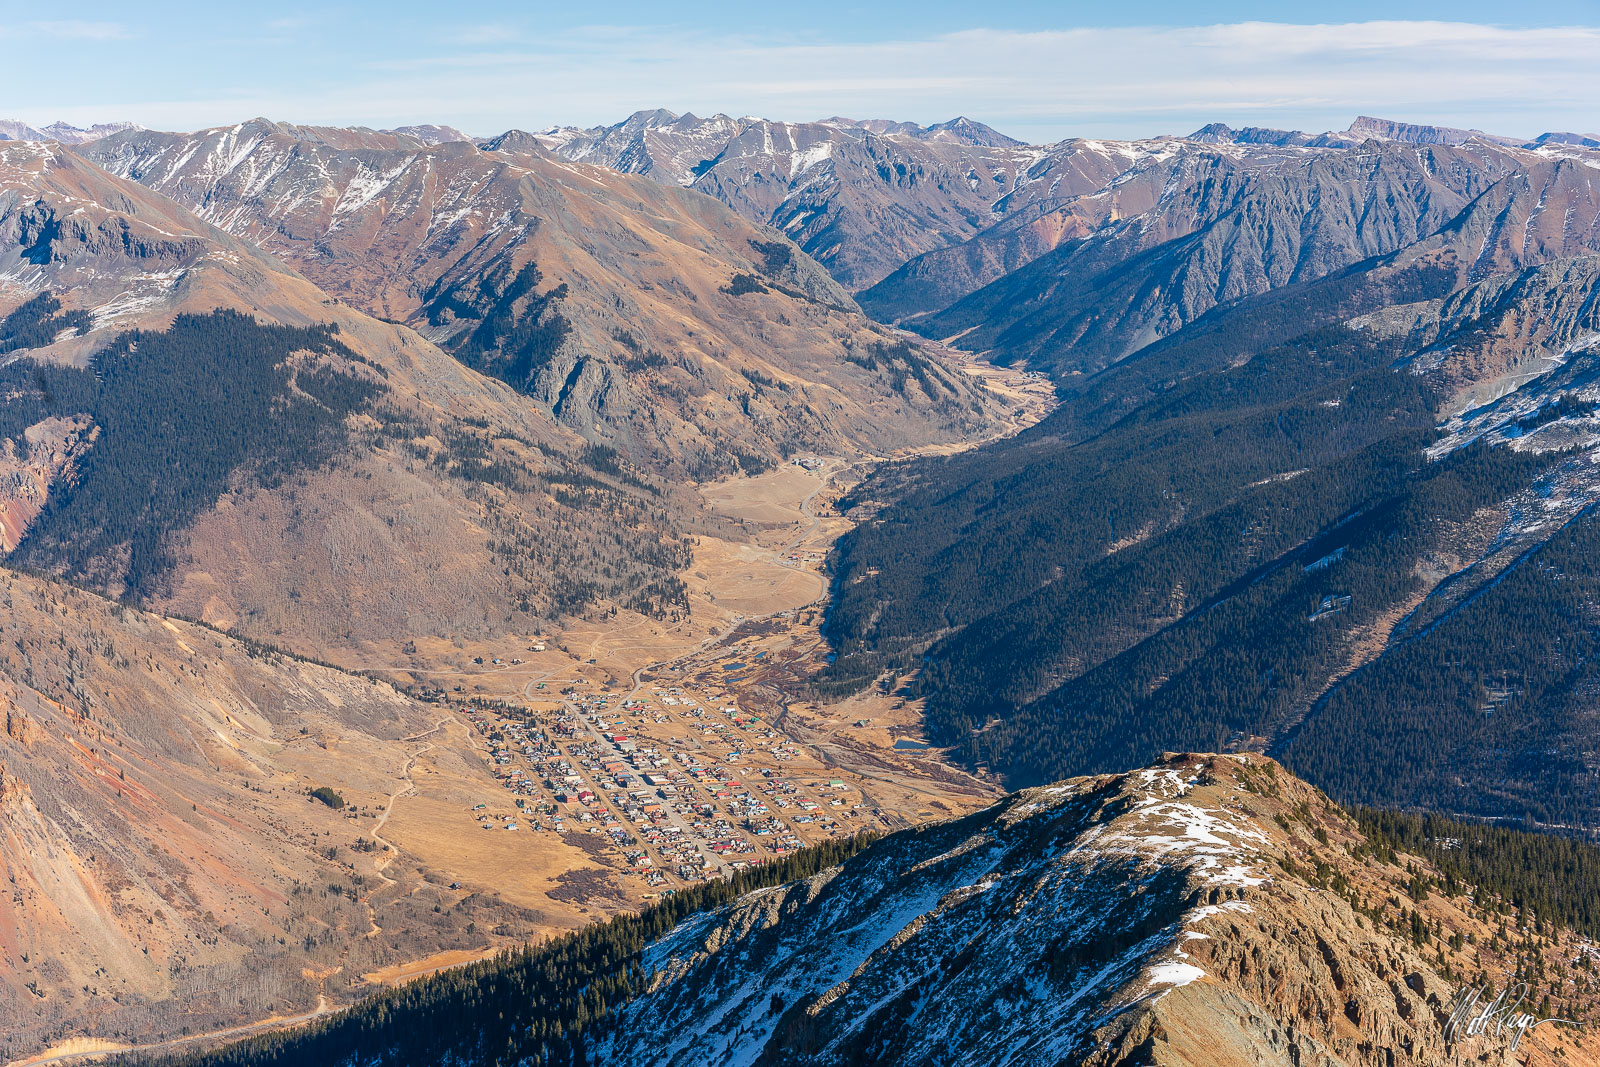 A view of Silverton, Colorado as seen from the summit of 13er Sultan Peak.Photo © copyright by Matt Payne.